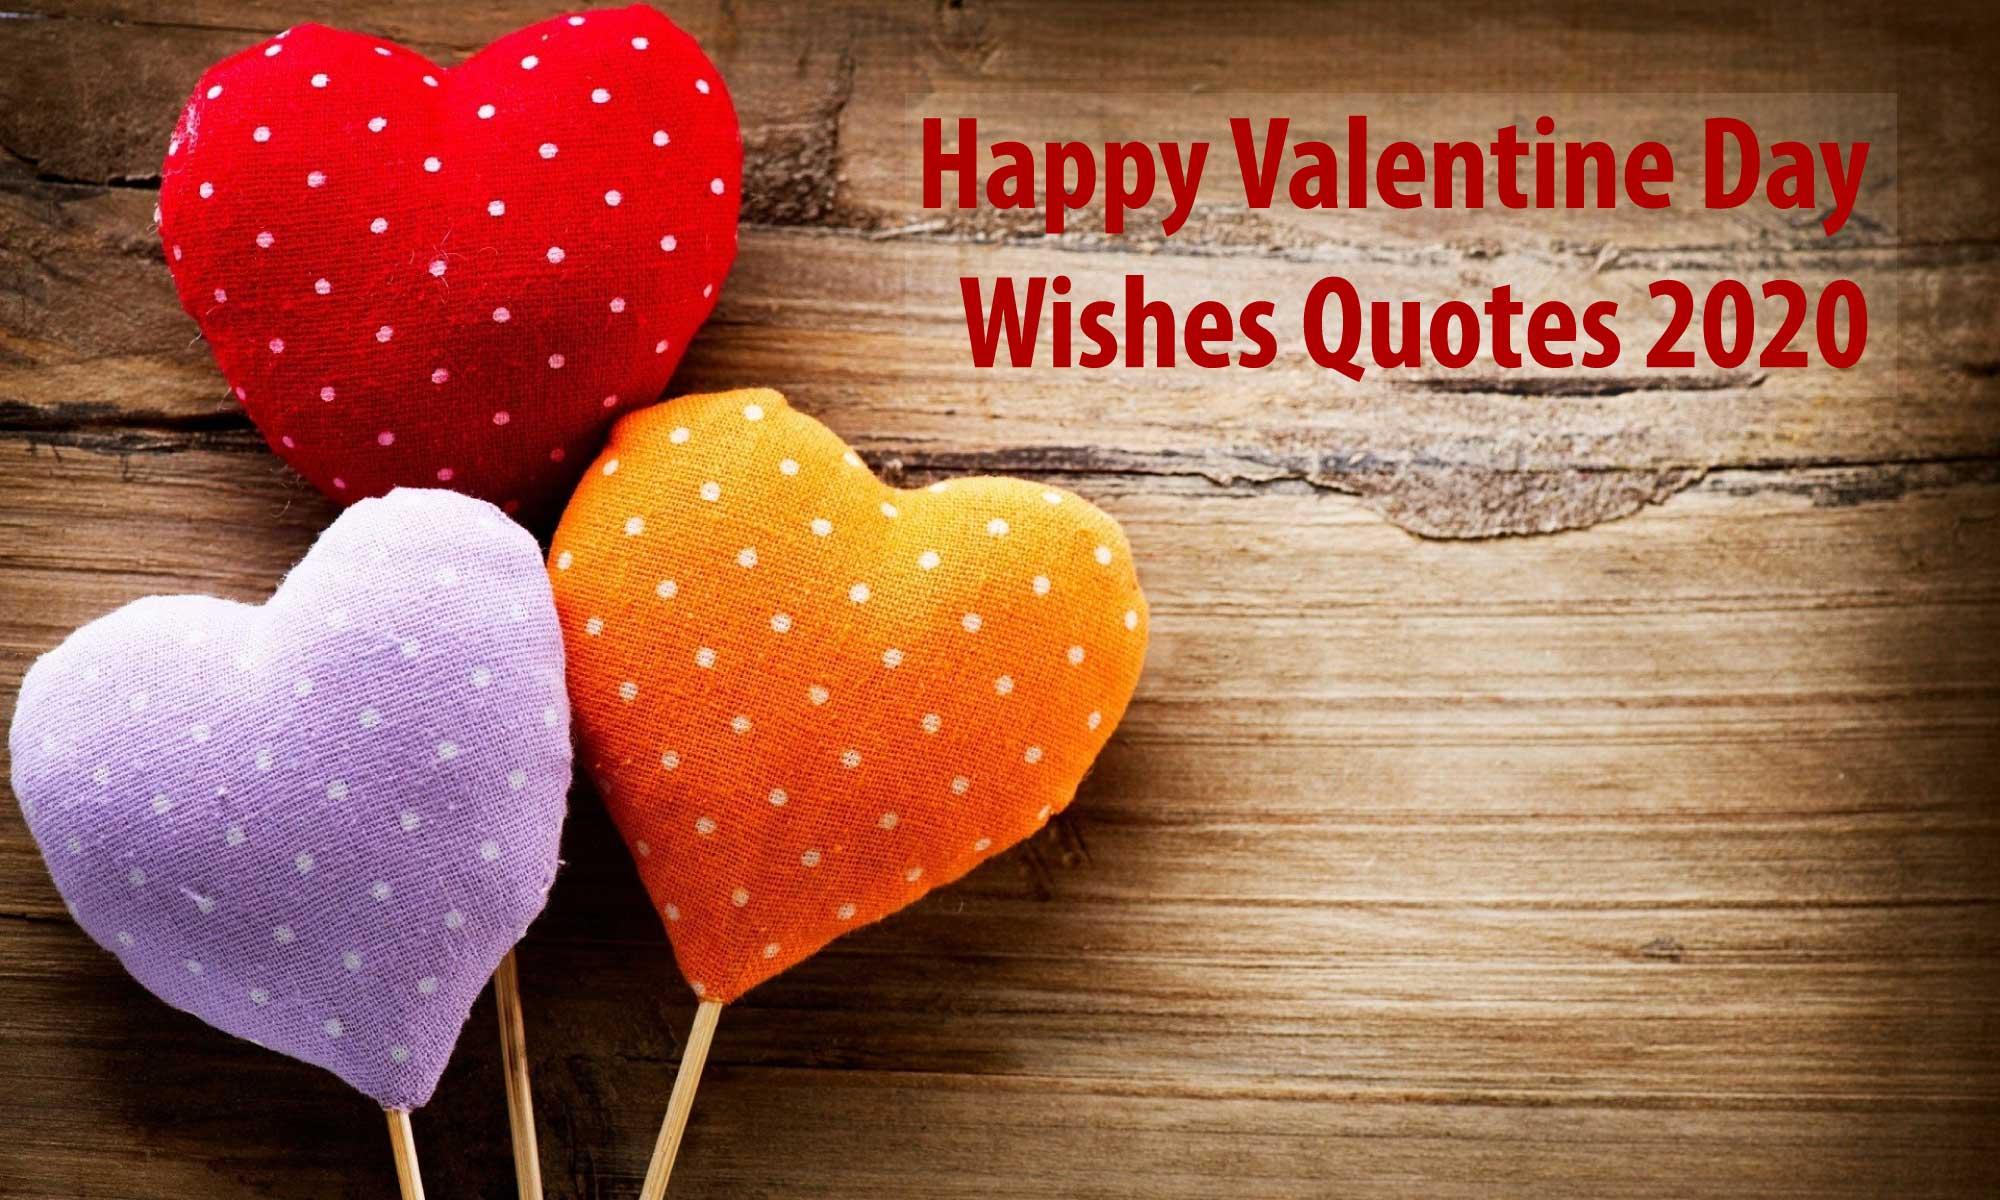 Happy Valentine Day Wishes Quotes 2020